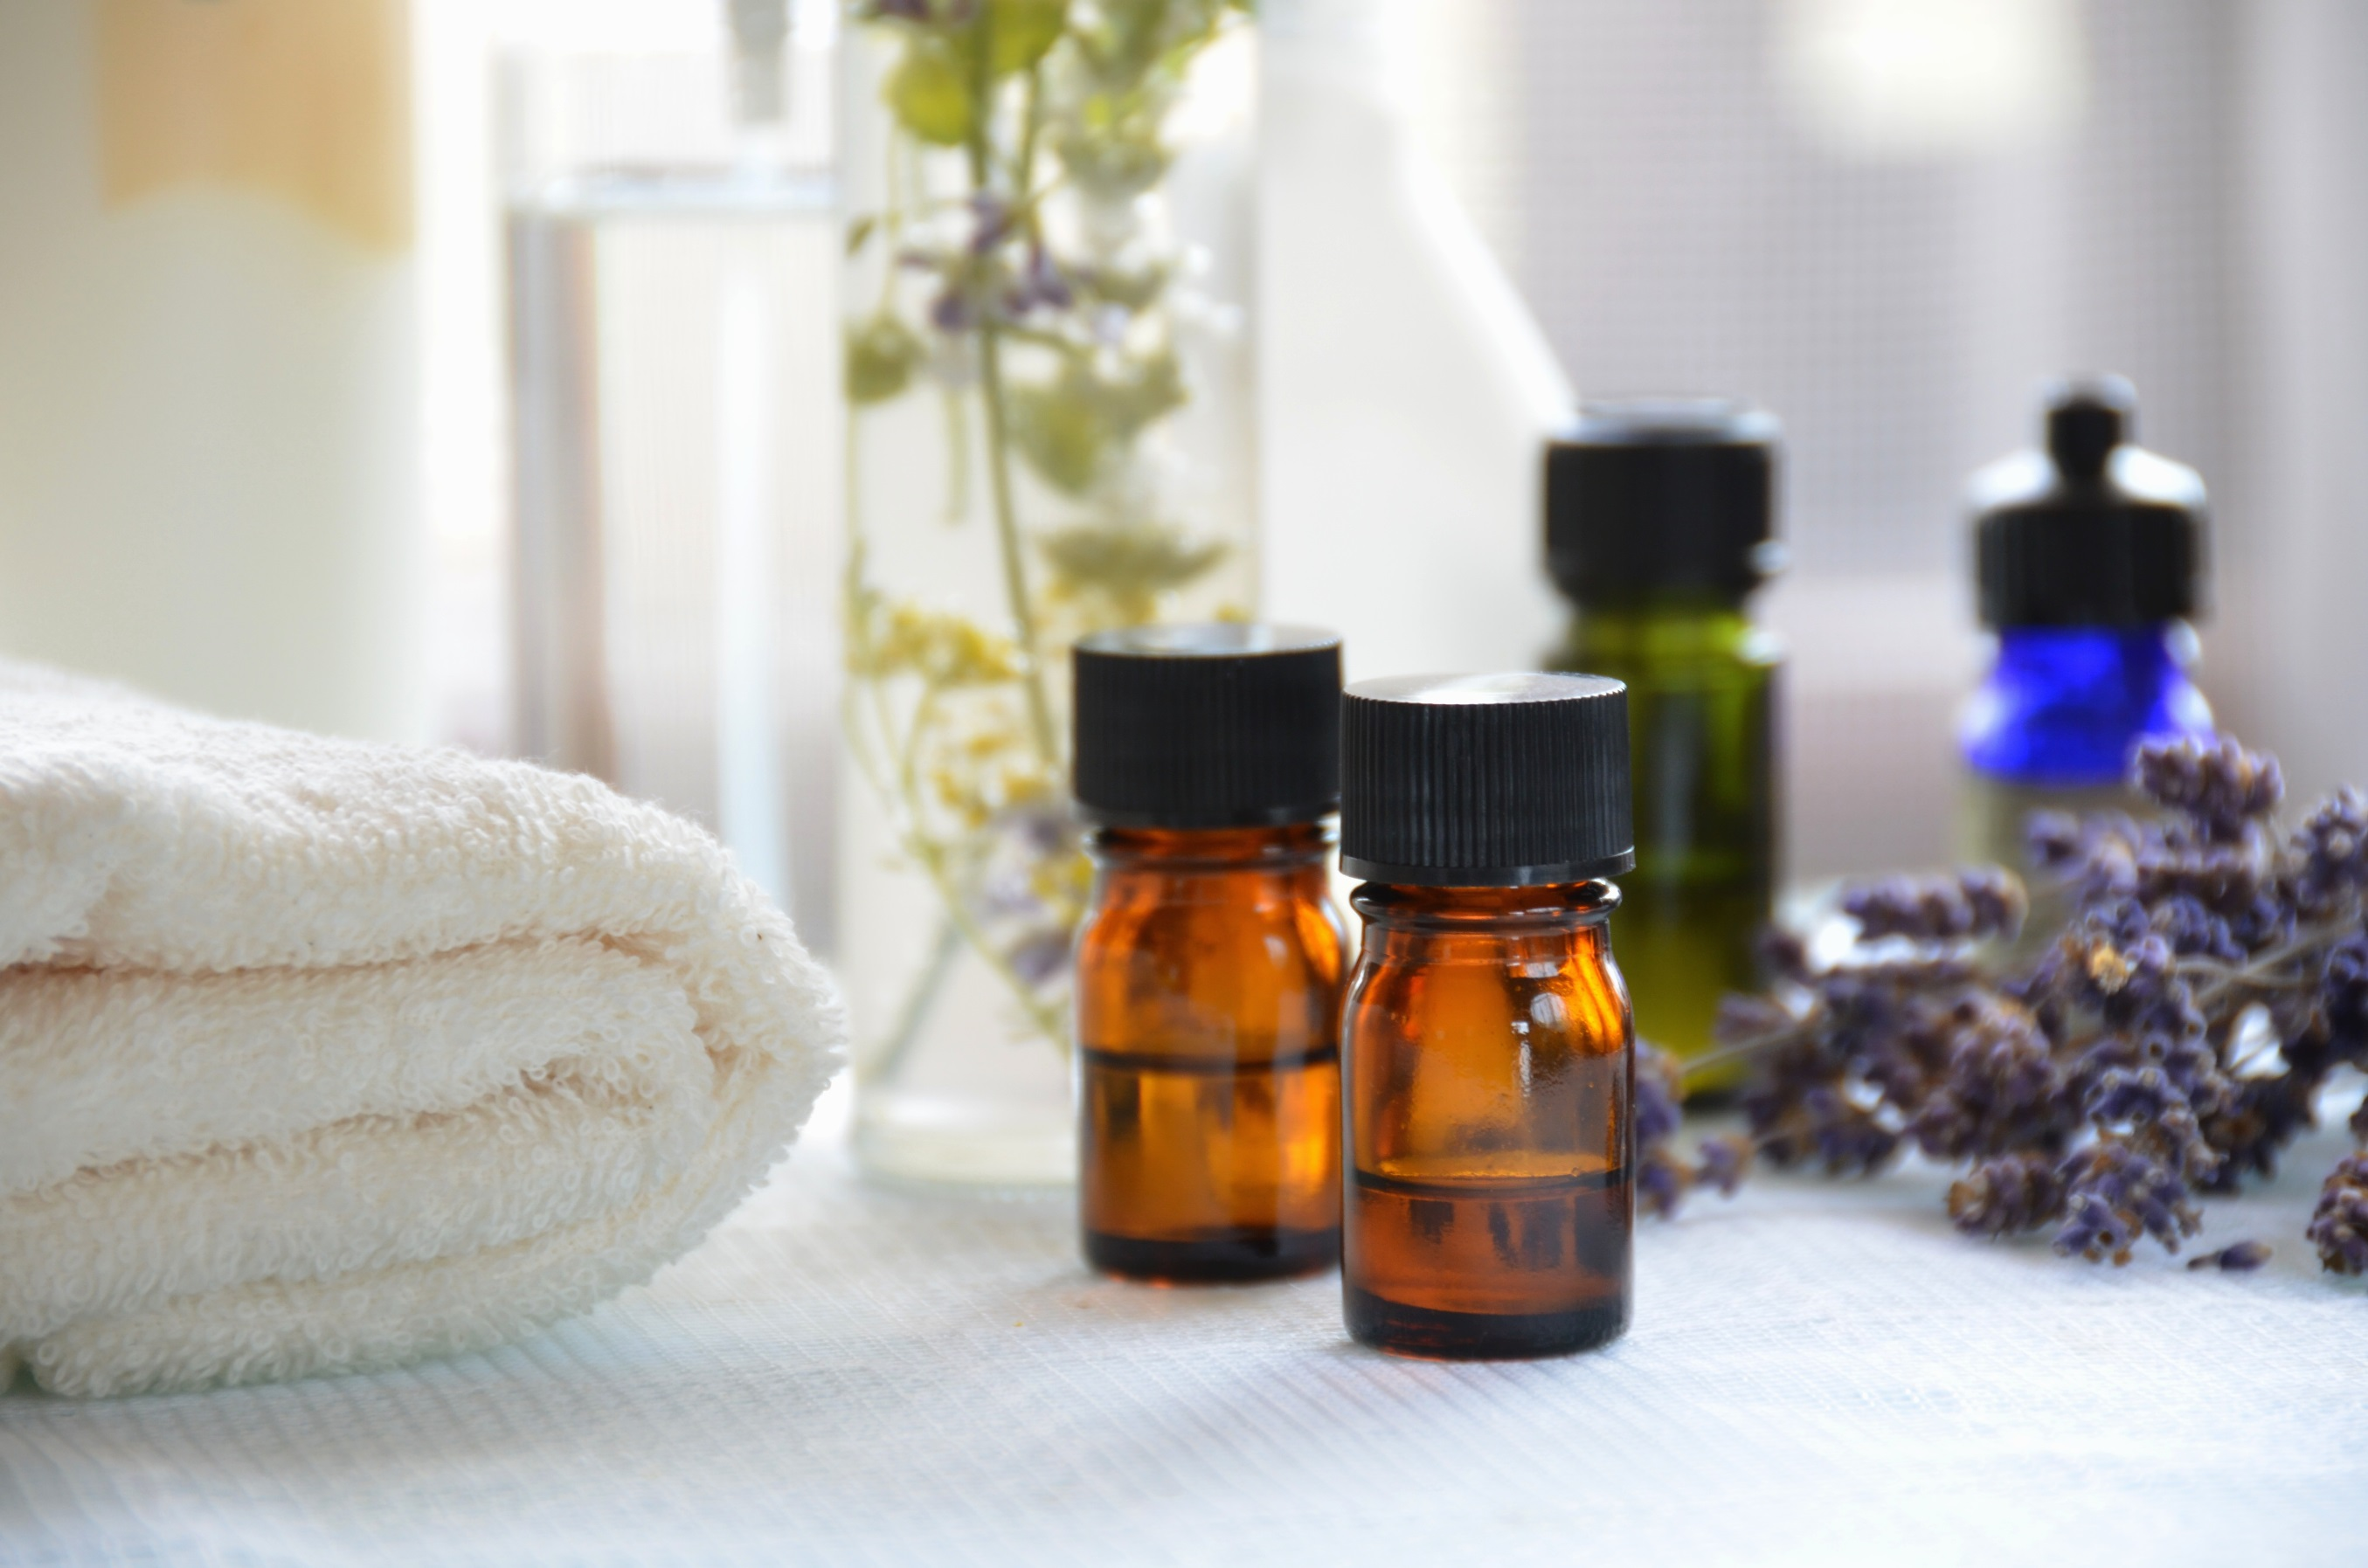 various essential oils and towel